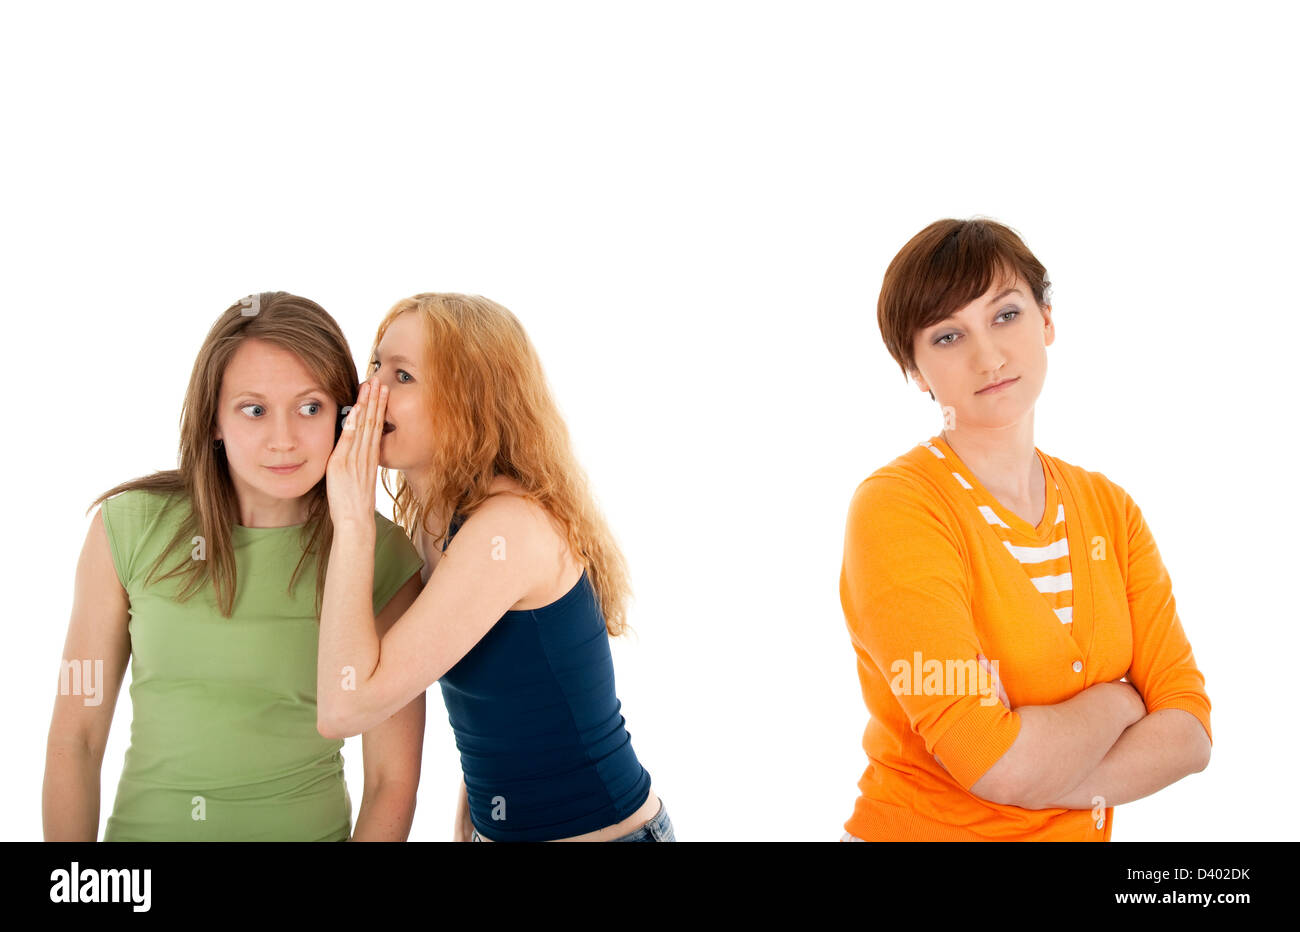 Two girls whispering secrets to each other, and their friend, upset and rejected - Stock Image